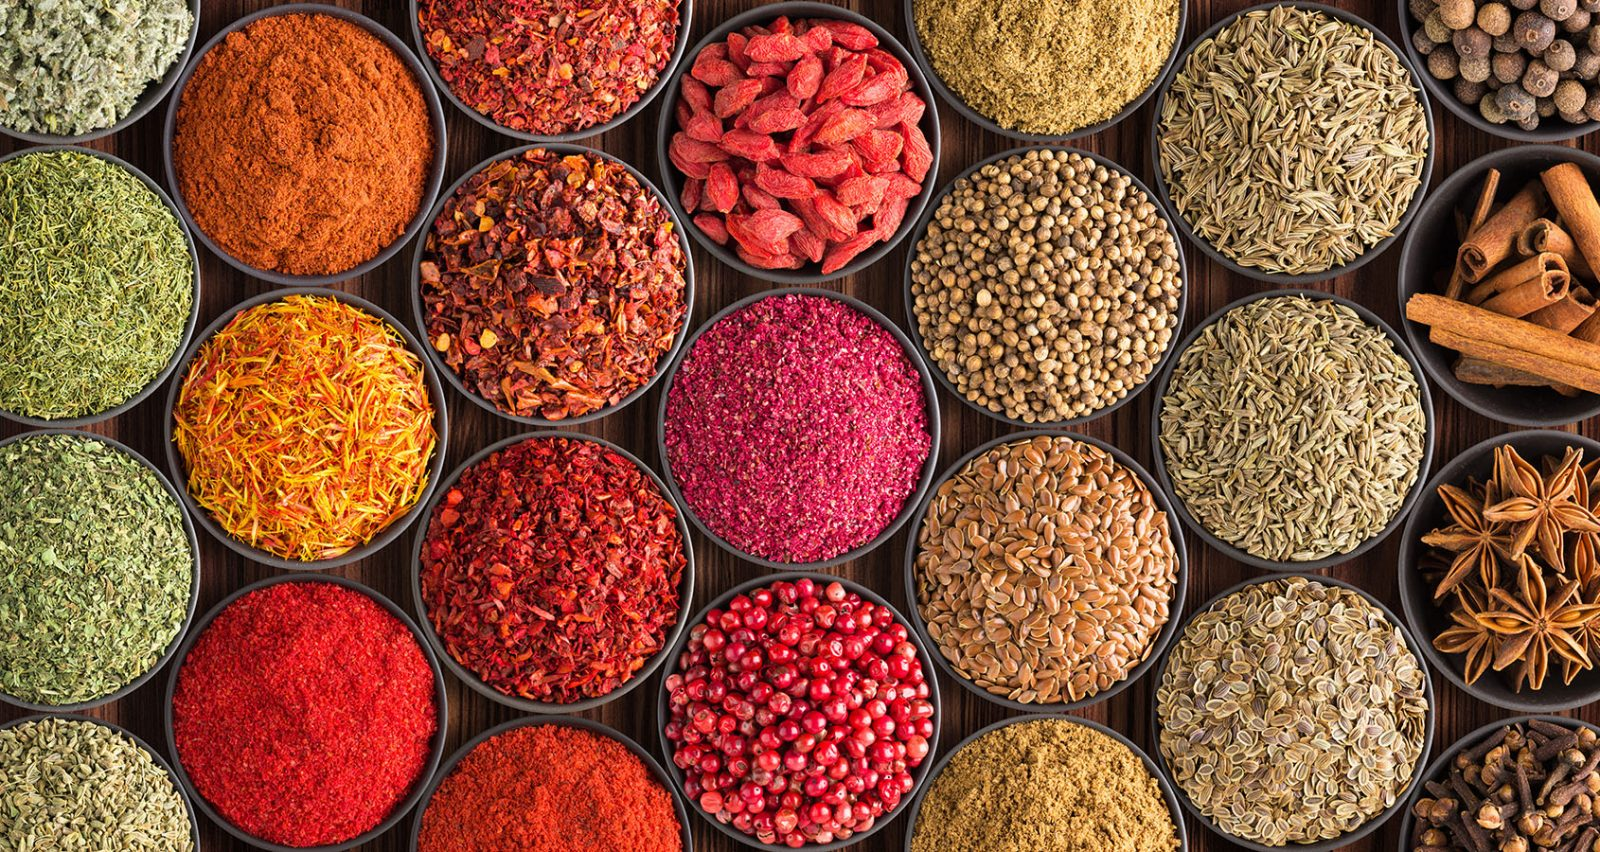 Top 10 spices to have in your kitchen